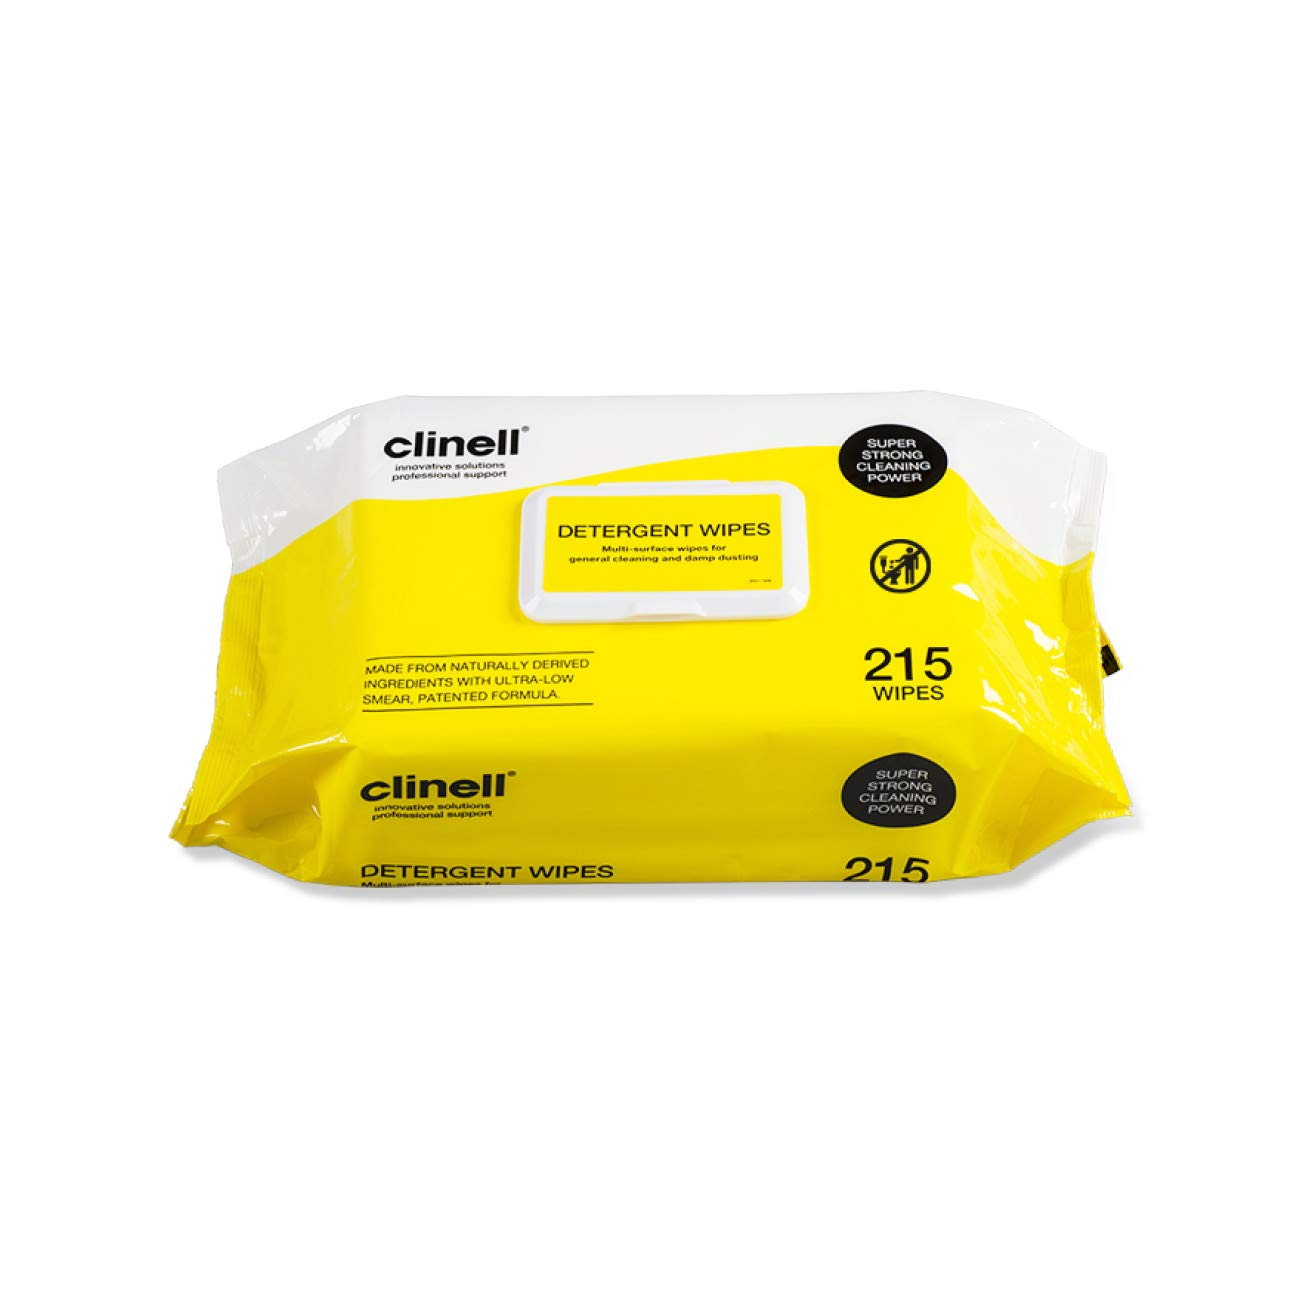 Clinell CDW215 Detergent Wipes - Alcohol and Disinfectant Free - Pack of 215 Wipes